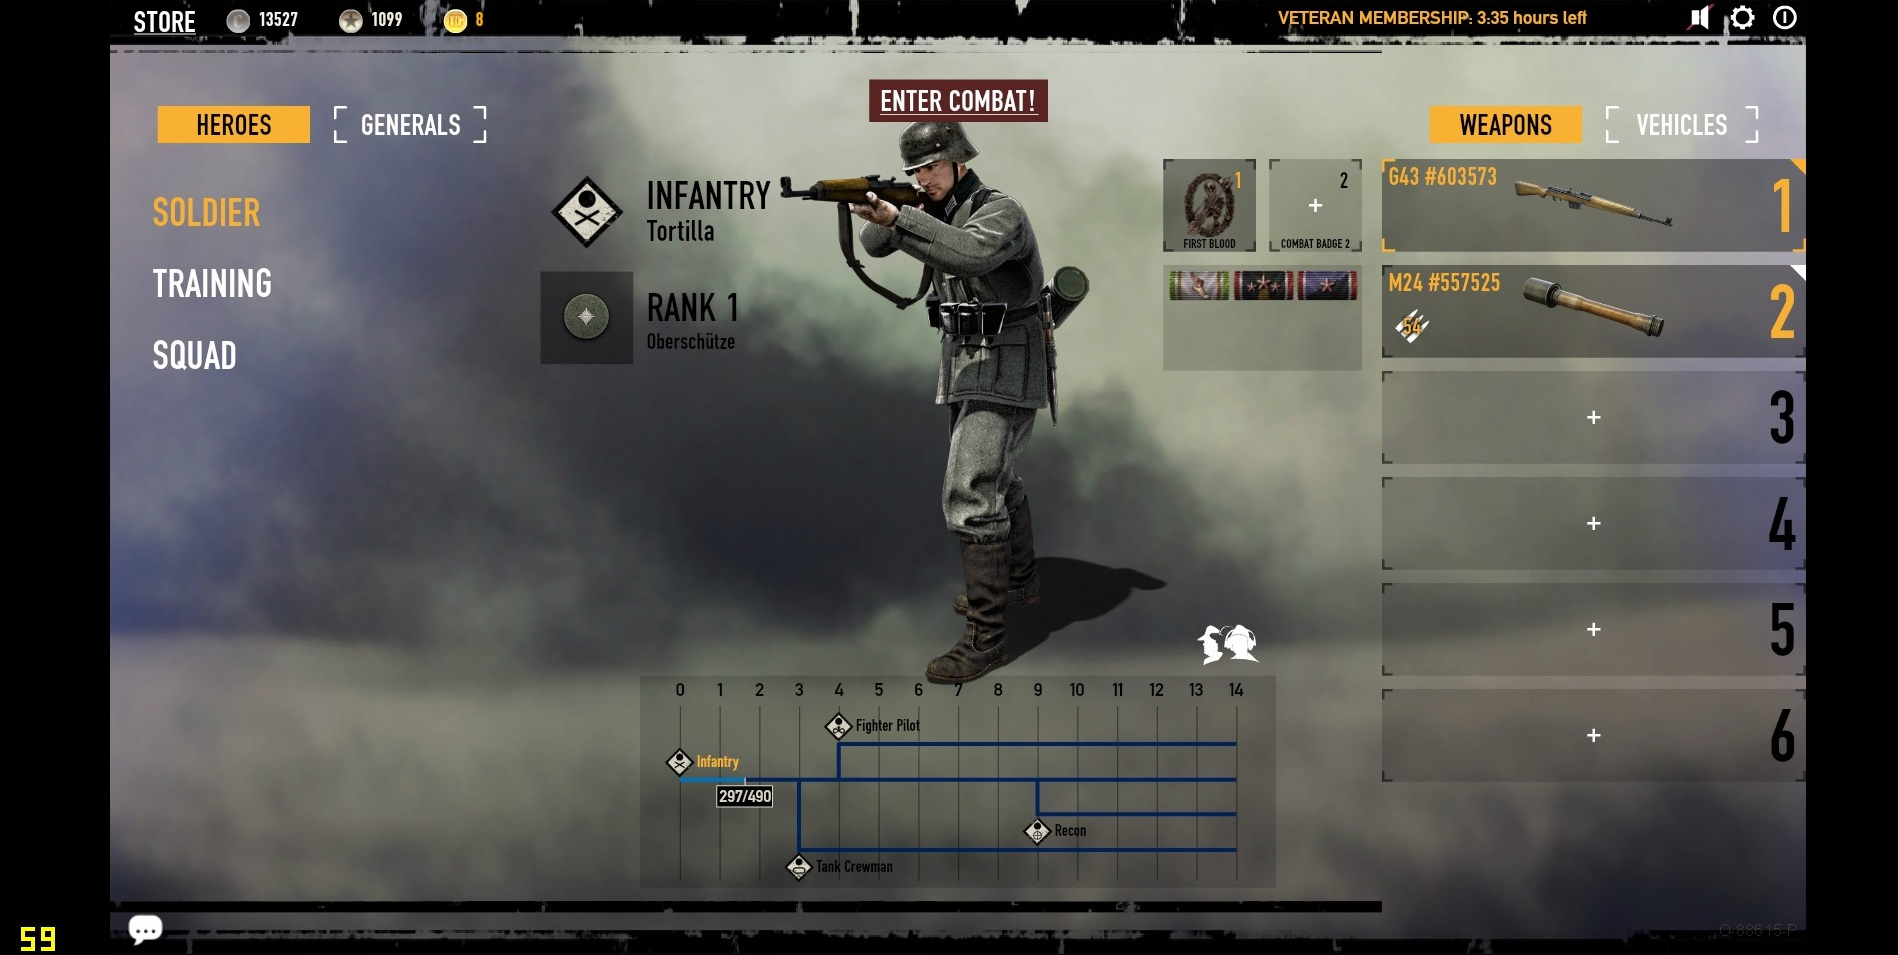 How To Leave Matchmaking Heroes And Generals